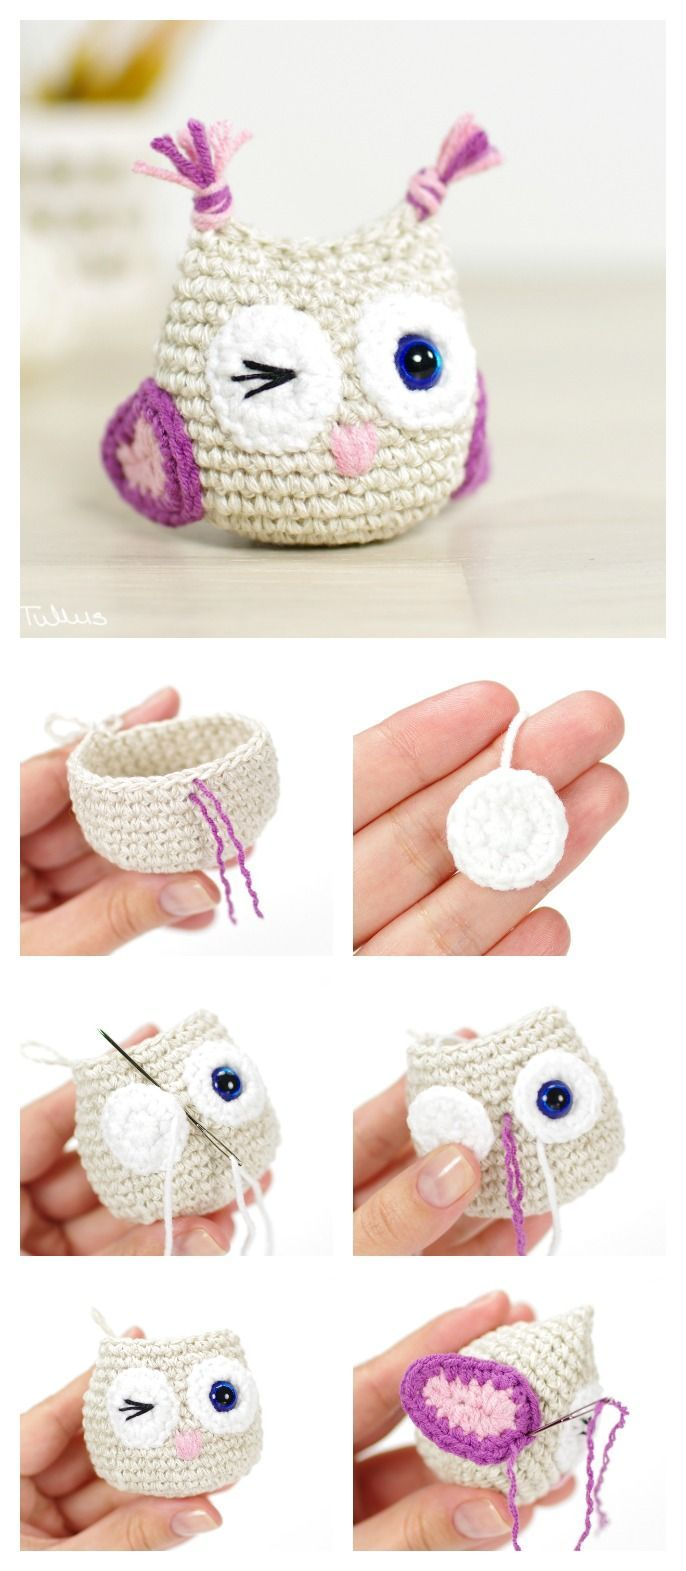 DIY Crocheted Owls with Free Patterns